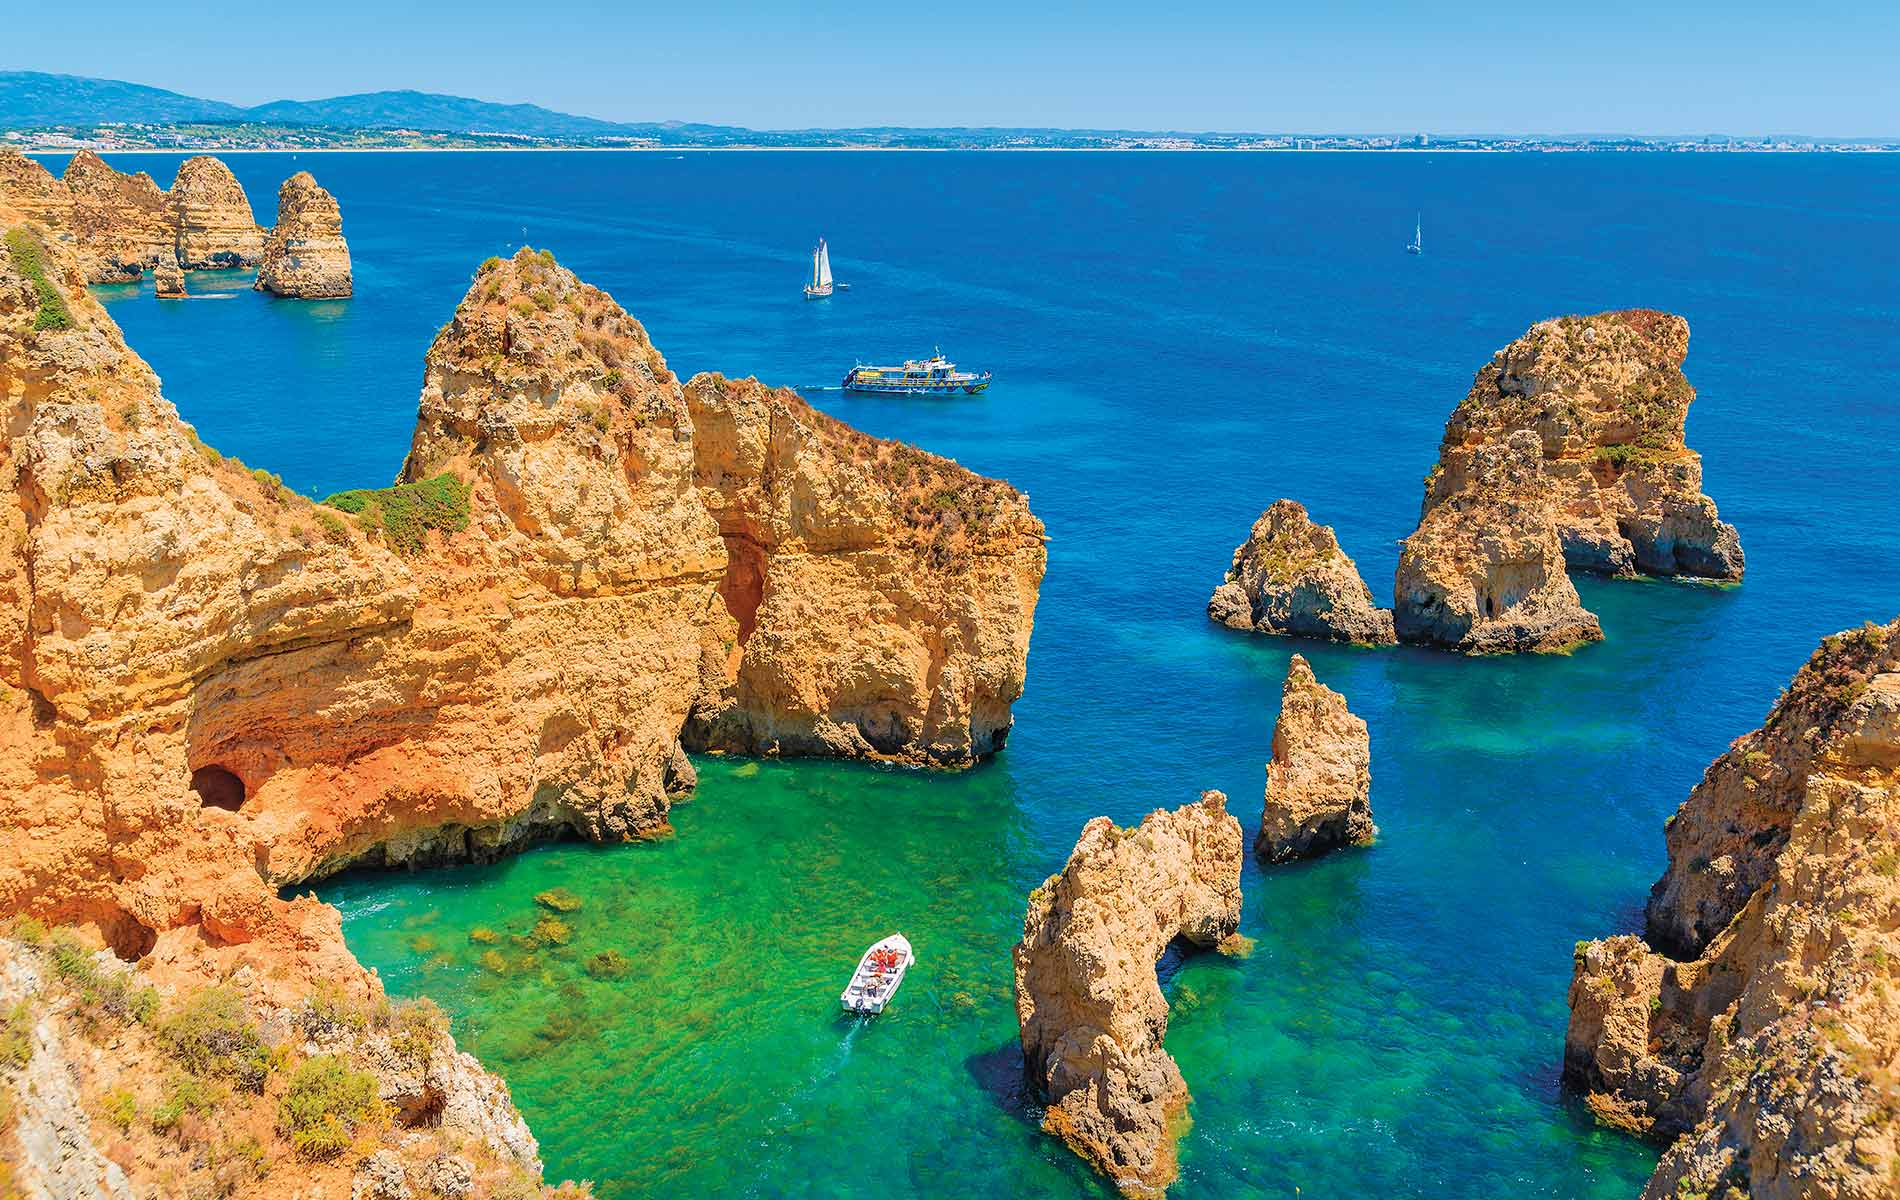 Ponta da Piedade in Portugal's Algarve region